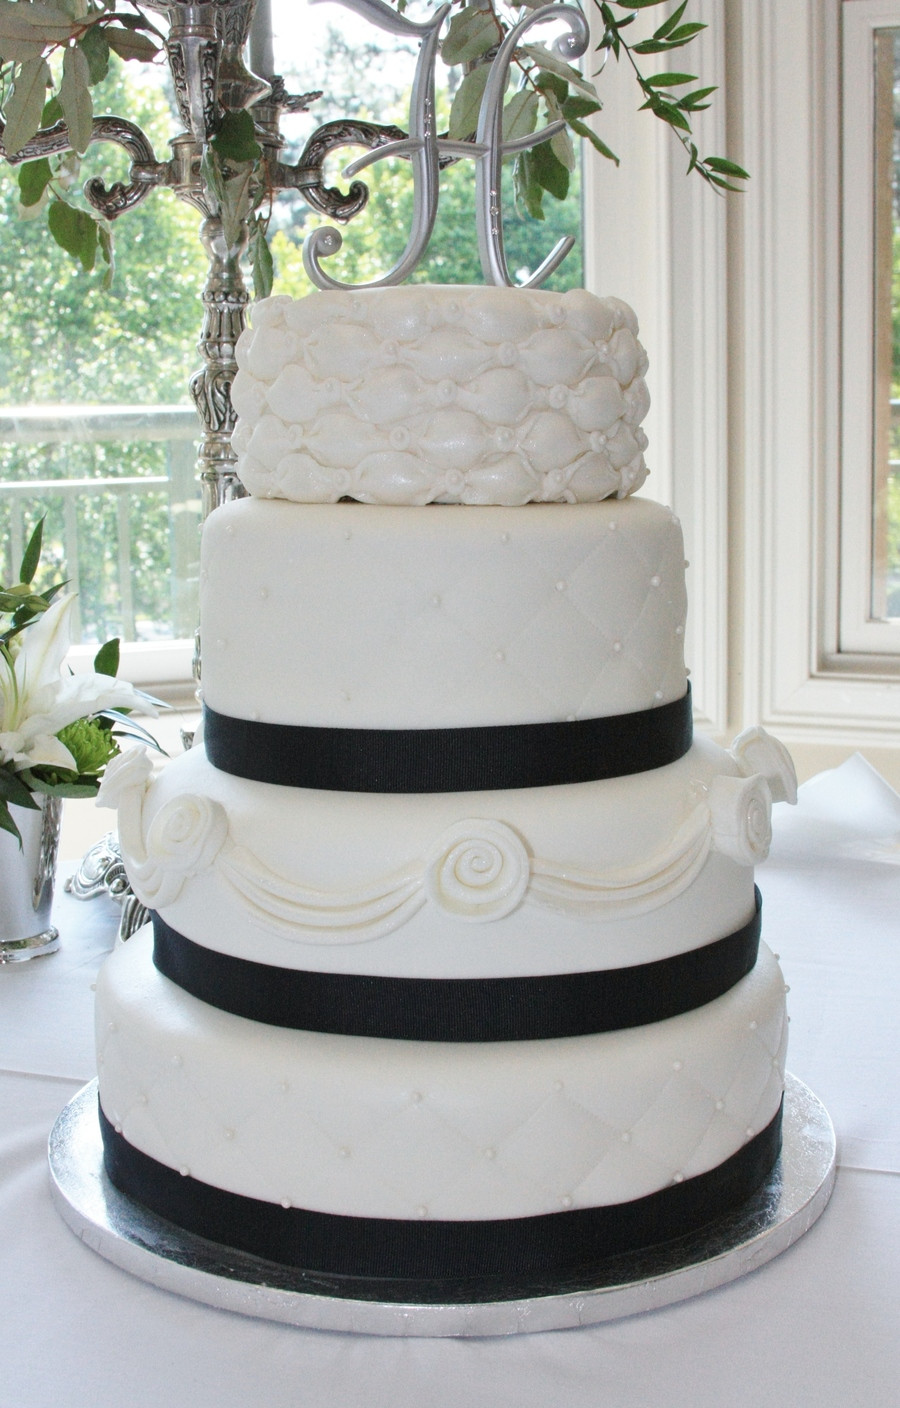 Wedding Cakes With Ribbon  Wedding Cake W Navy Ribbon CakeCentral